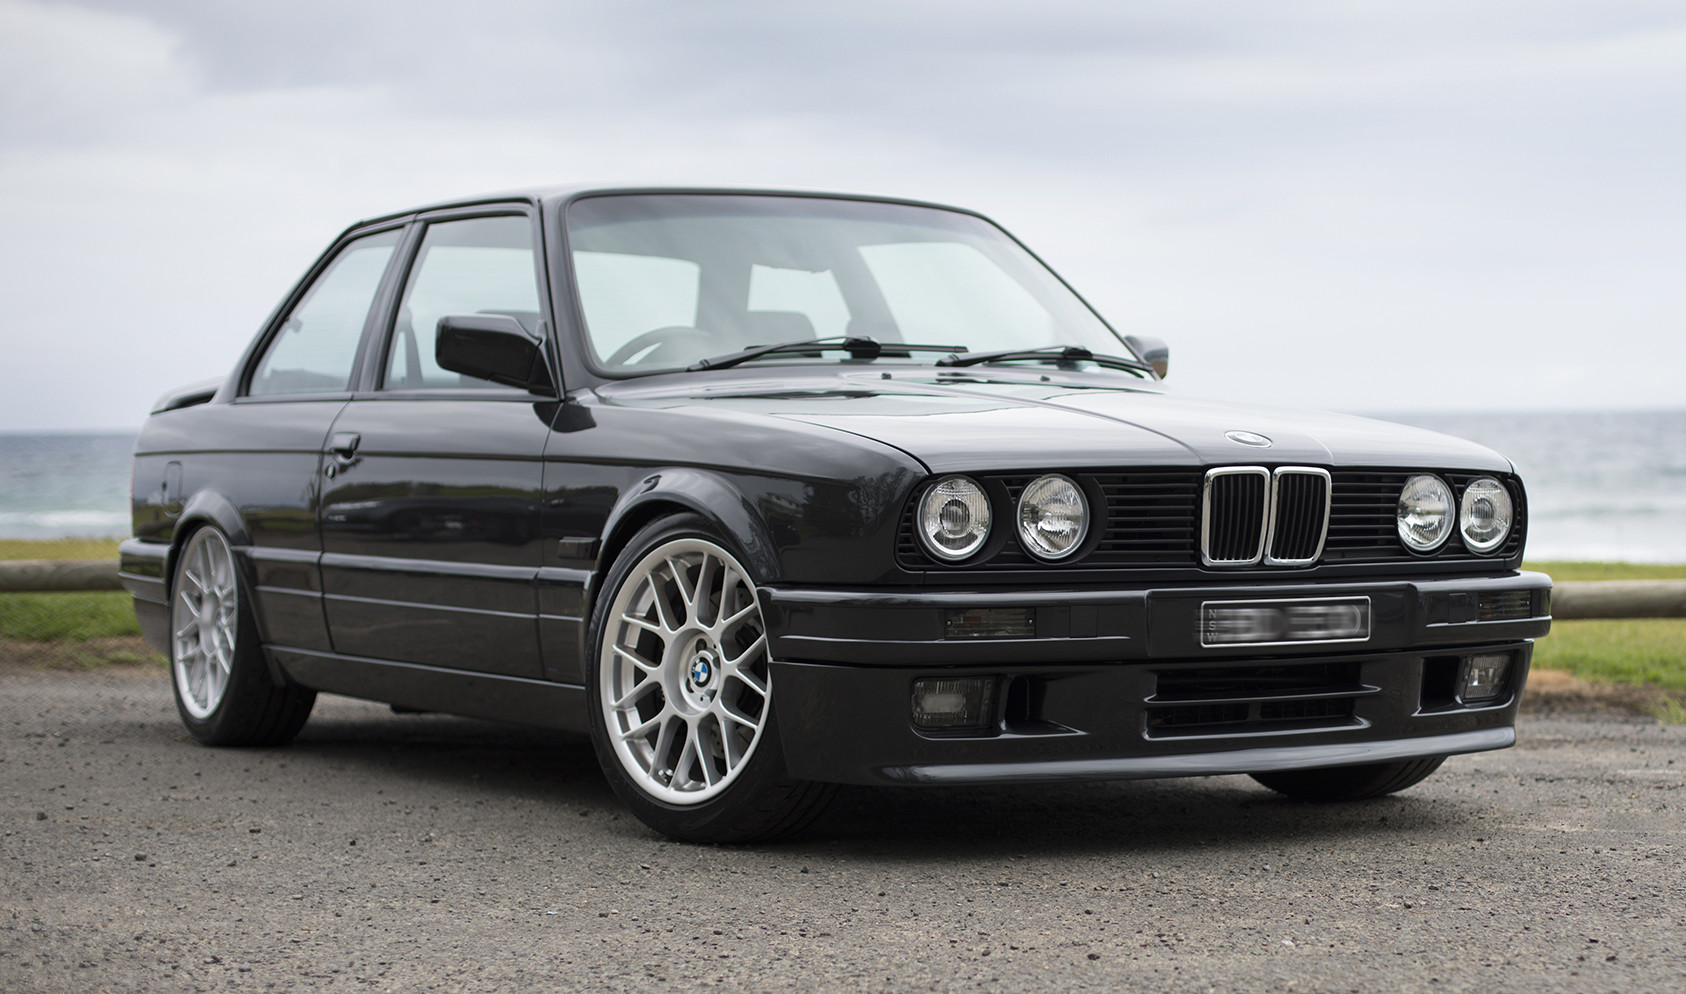 "E30<br />Wheels: 17x8"" ET25 Hyper Silver ARC-8<br />Tires: 215/45-17 Bridgestone Potenza"